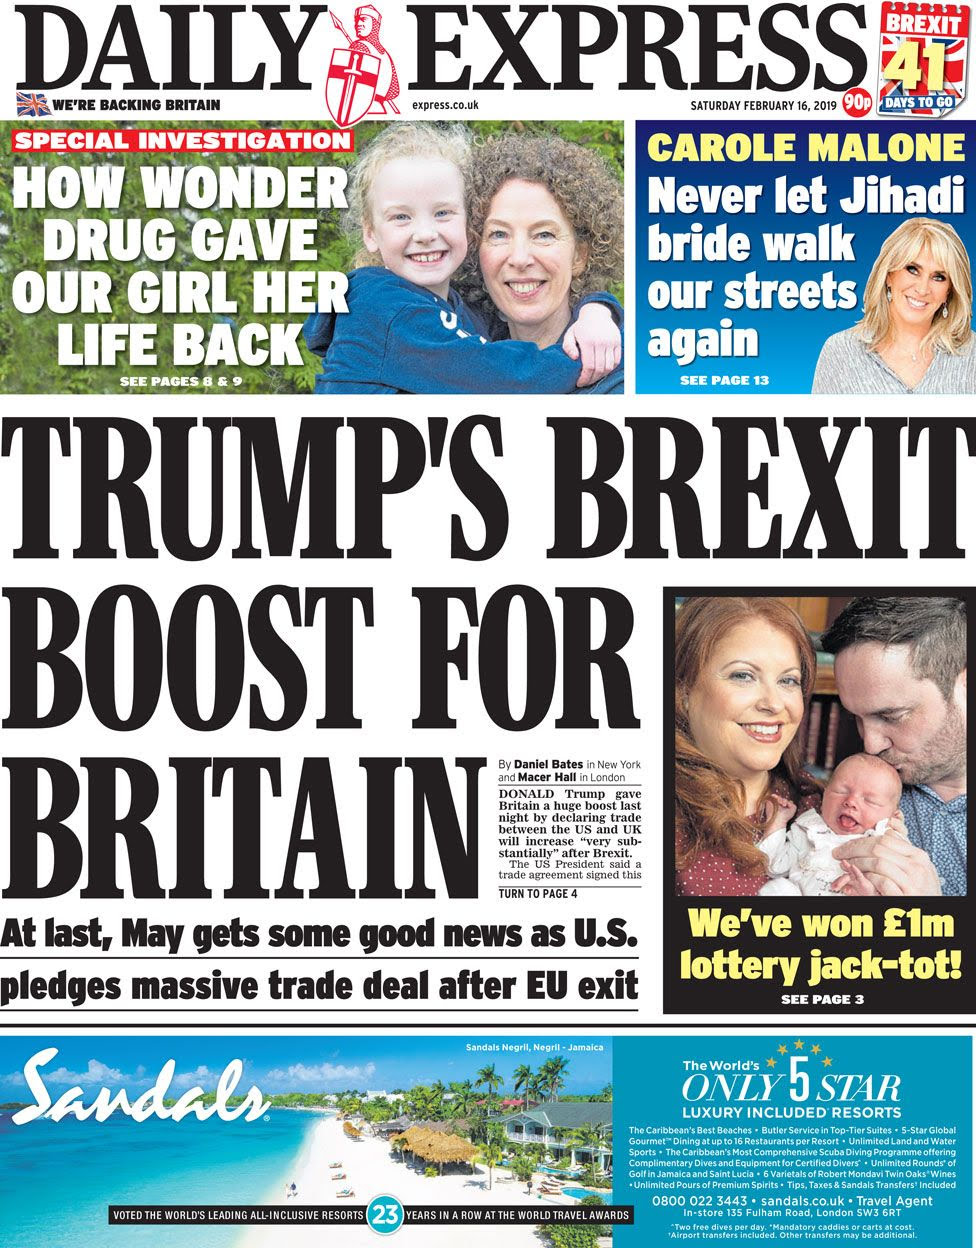 Daily Express front page on 16 February 2019